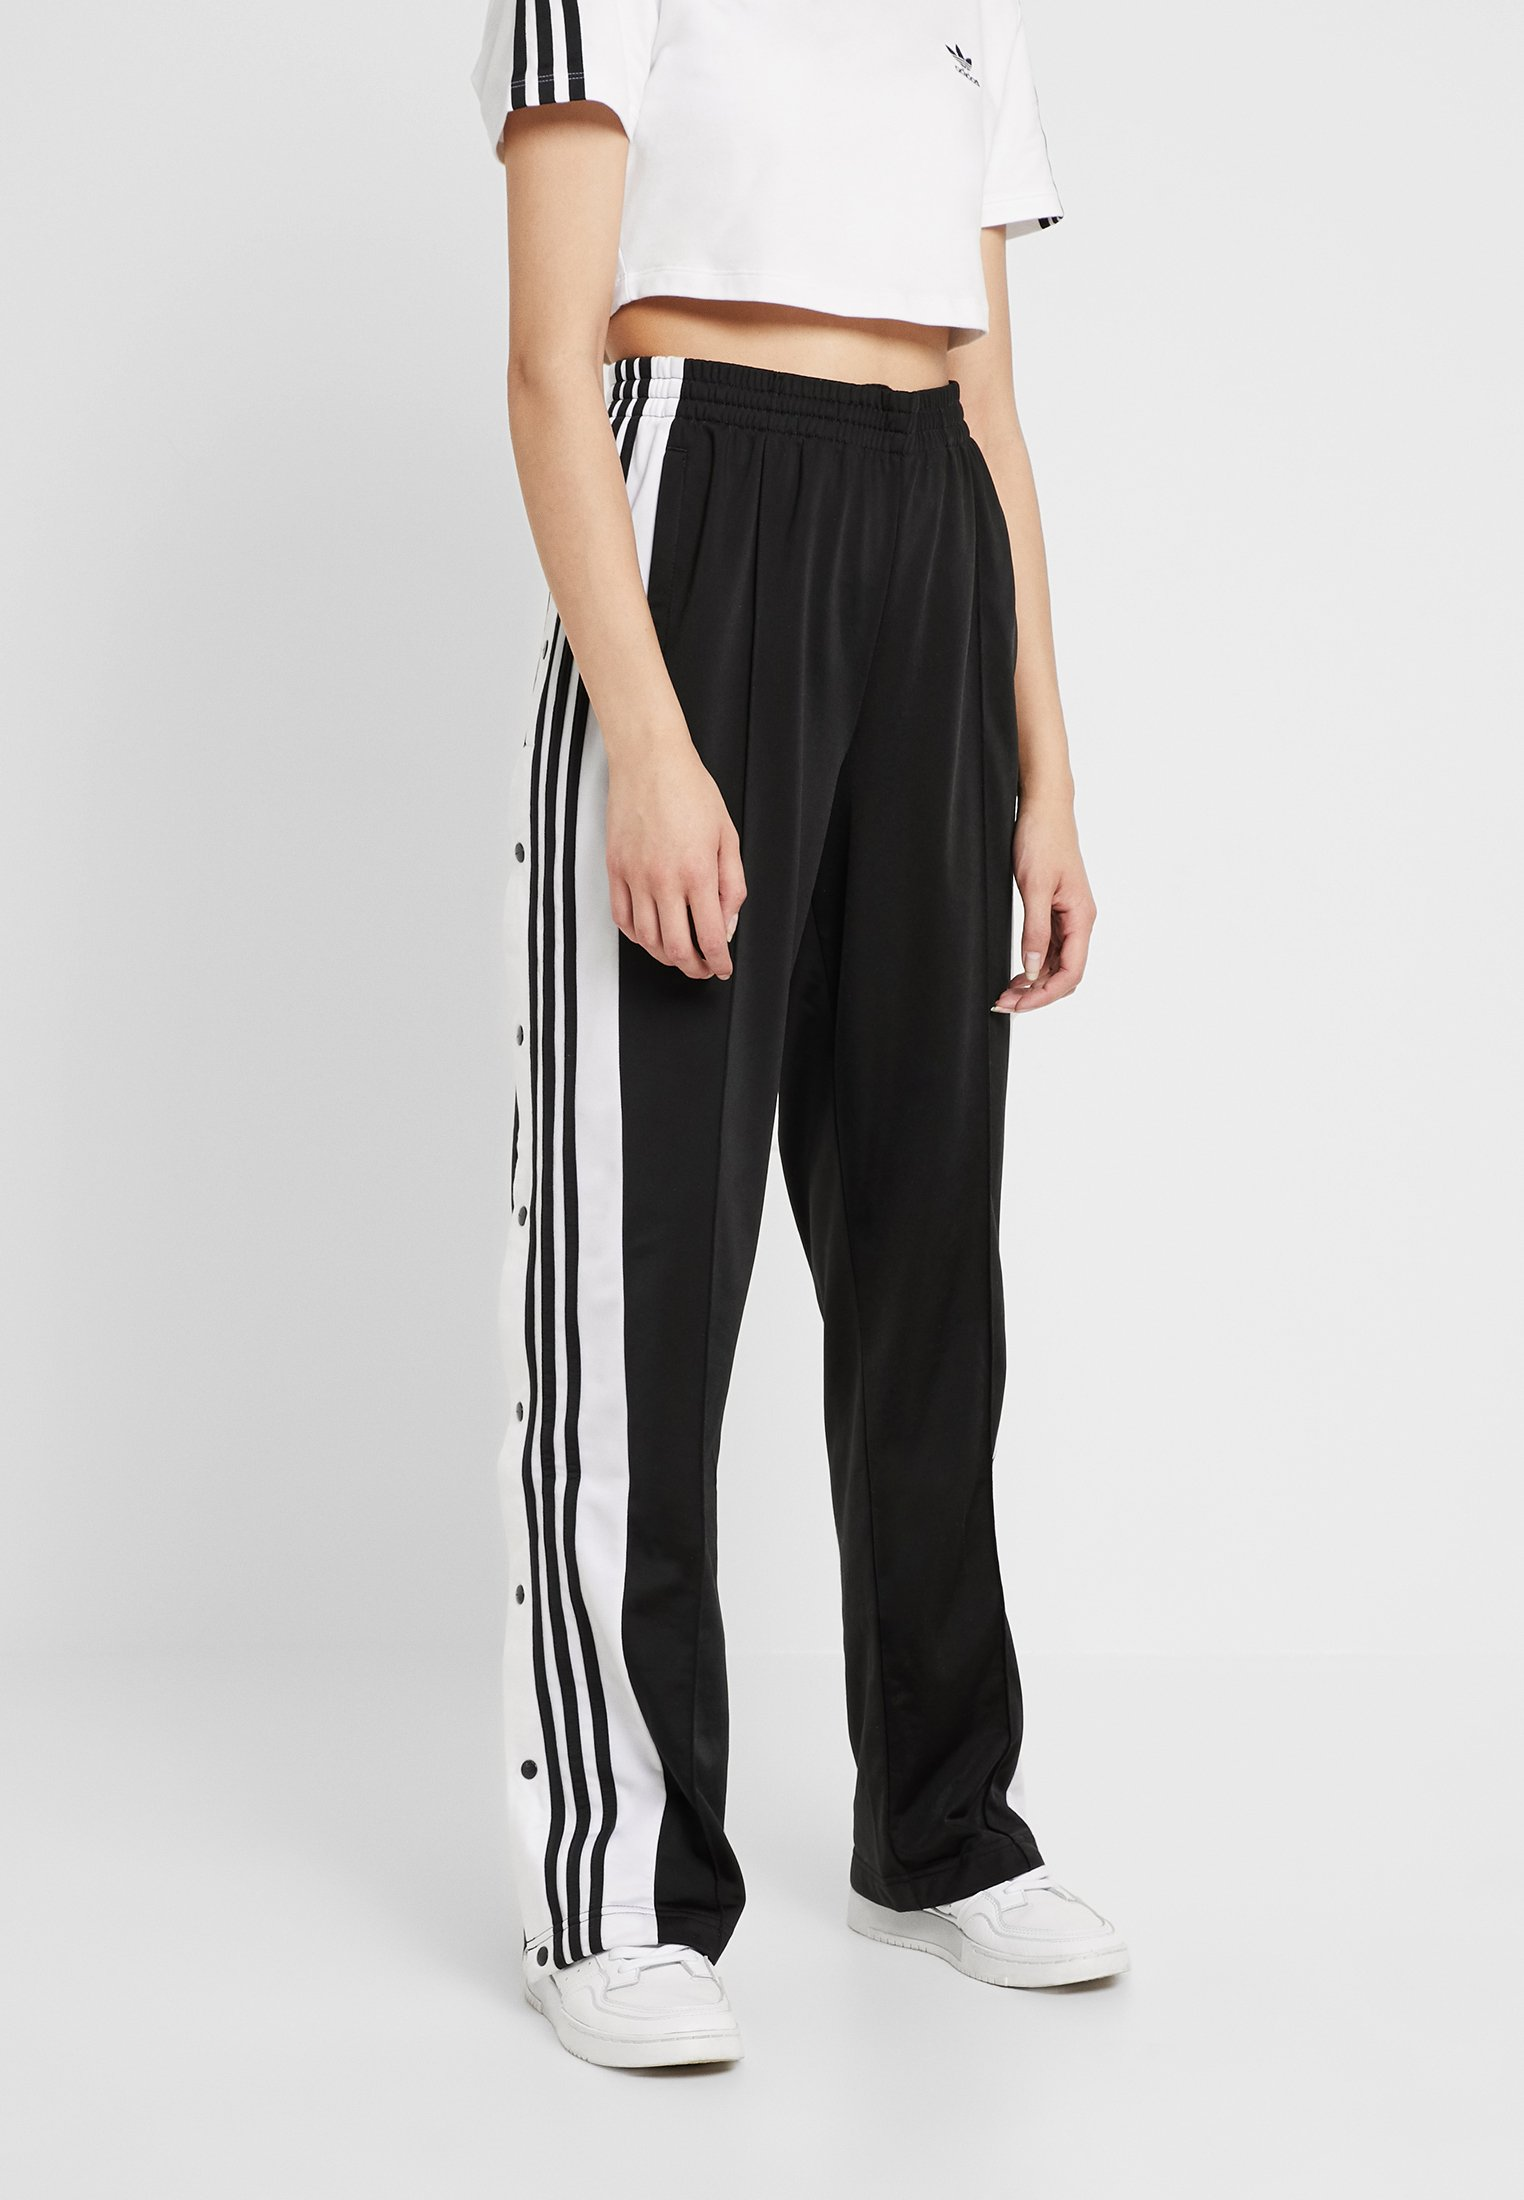 paño segmento Hazlo pesado  adidas Originals ADIBREAK PANT - Tracksuit bottoms - black - Zalando.co.uk